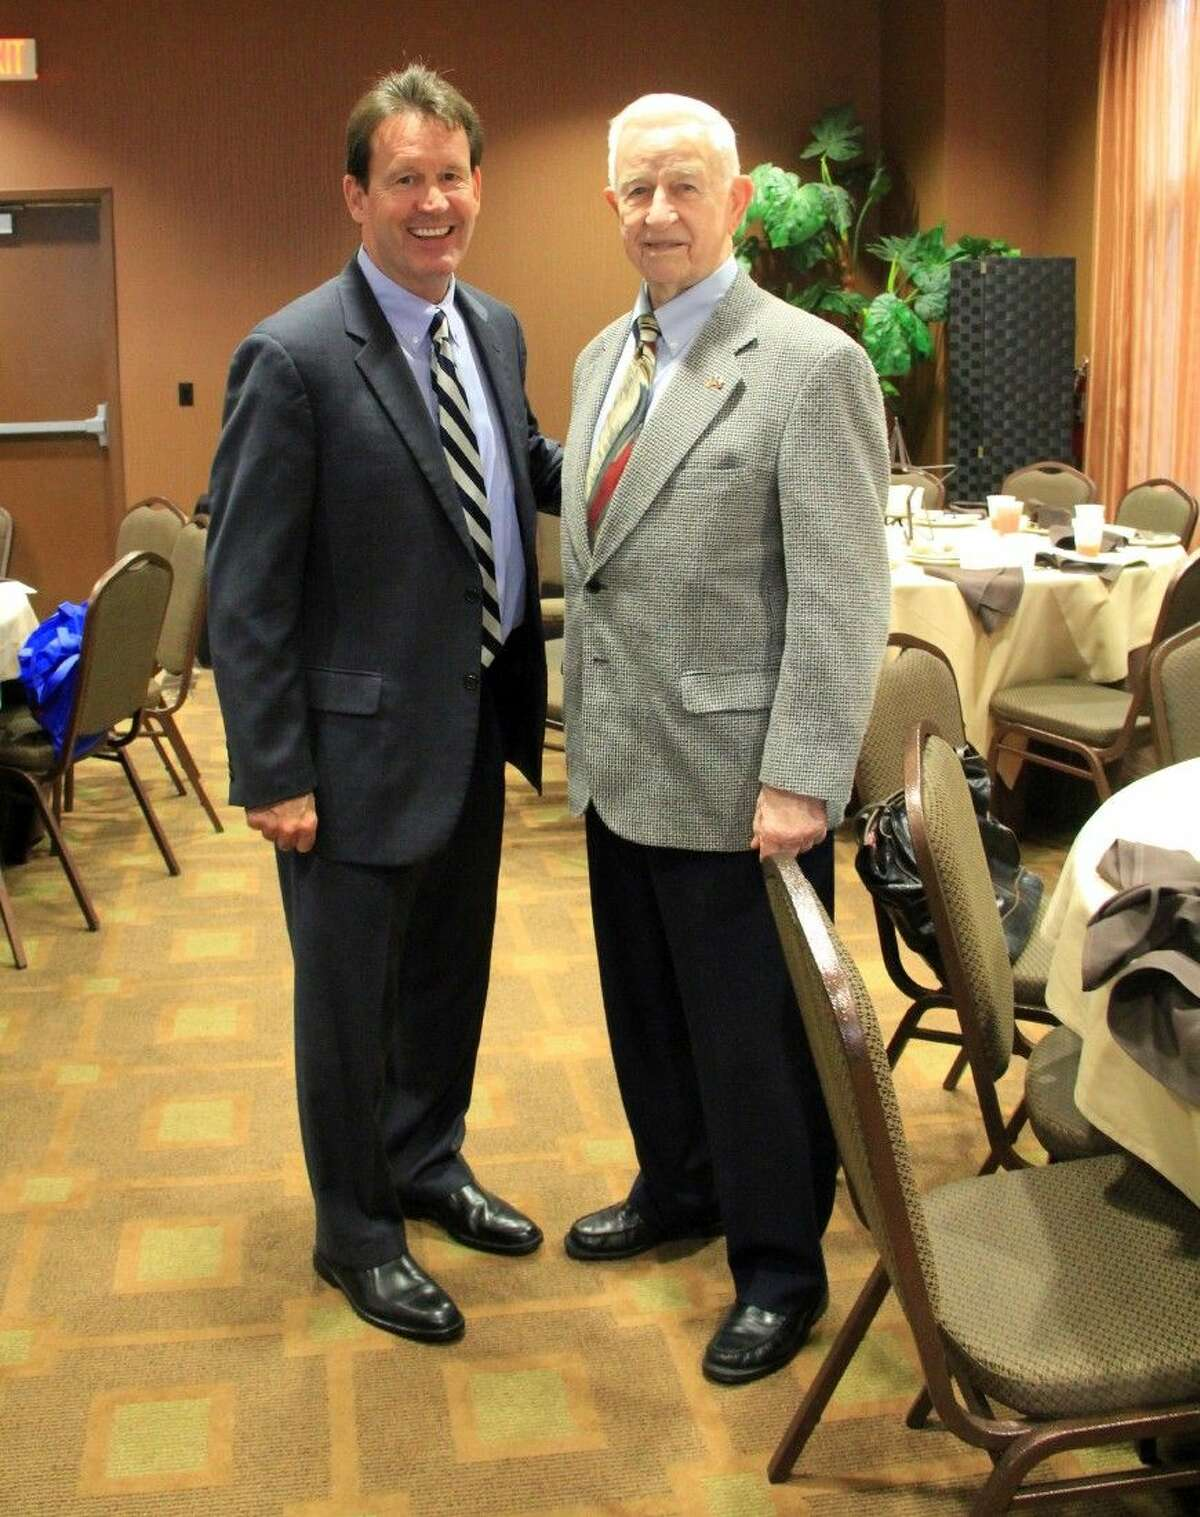 Mayor Tom Reid, right, here with assistant city manager Jon Branson, has led Pearland for 34 years.